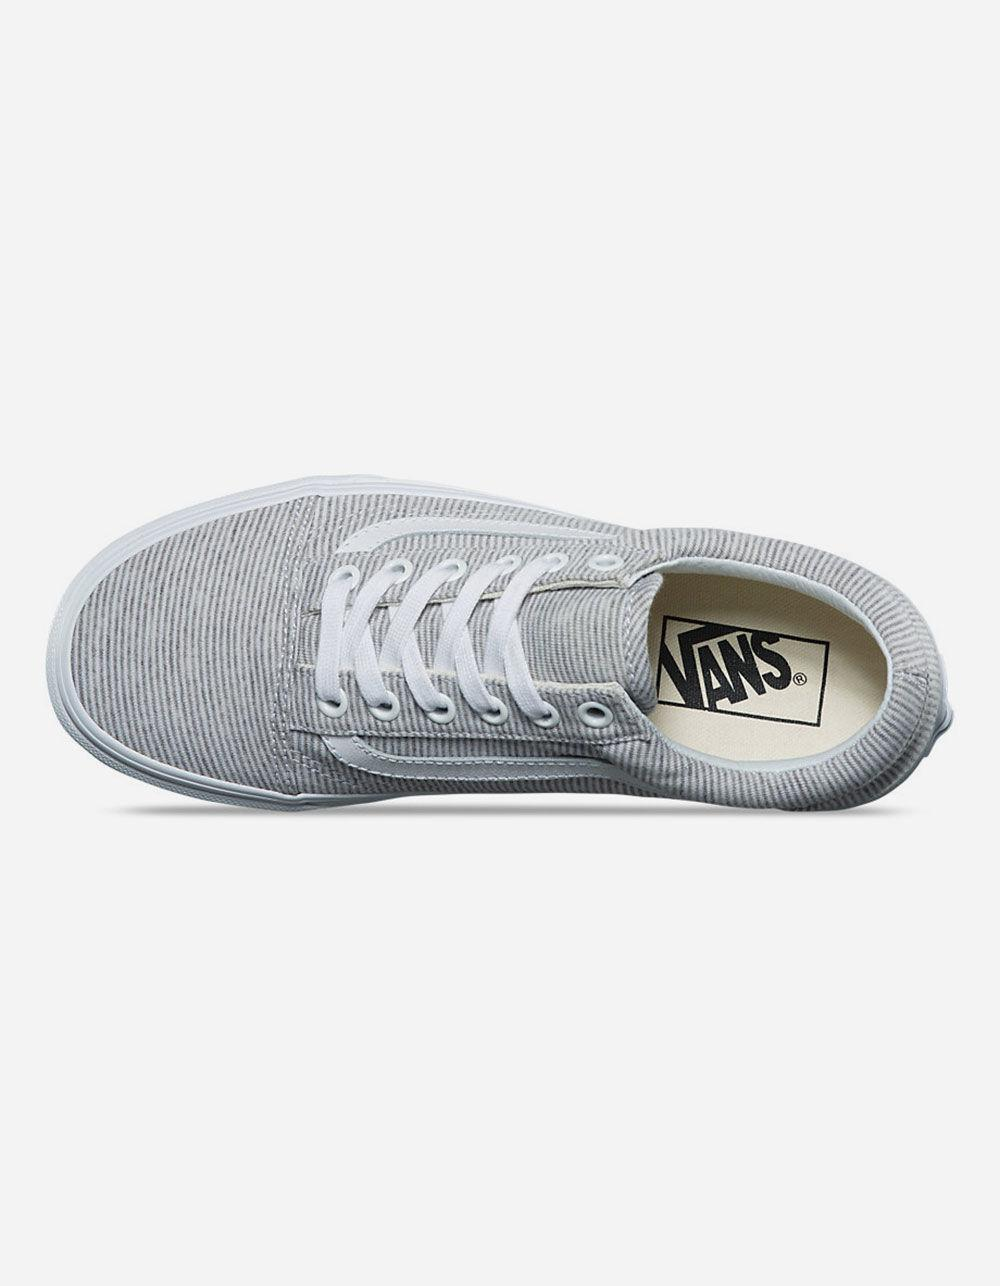 Lyst - Vans Jersey Old Skool Grey   True White Womens Shoes in Gray fdadb9576